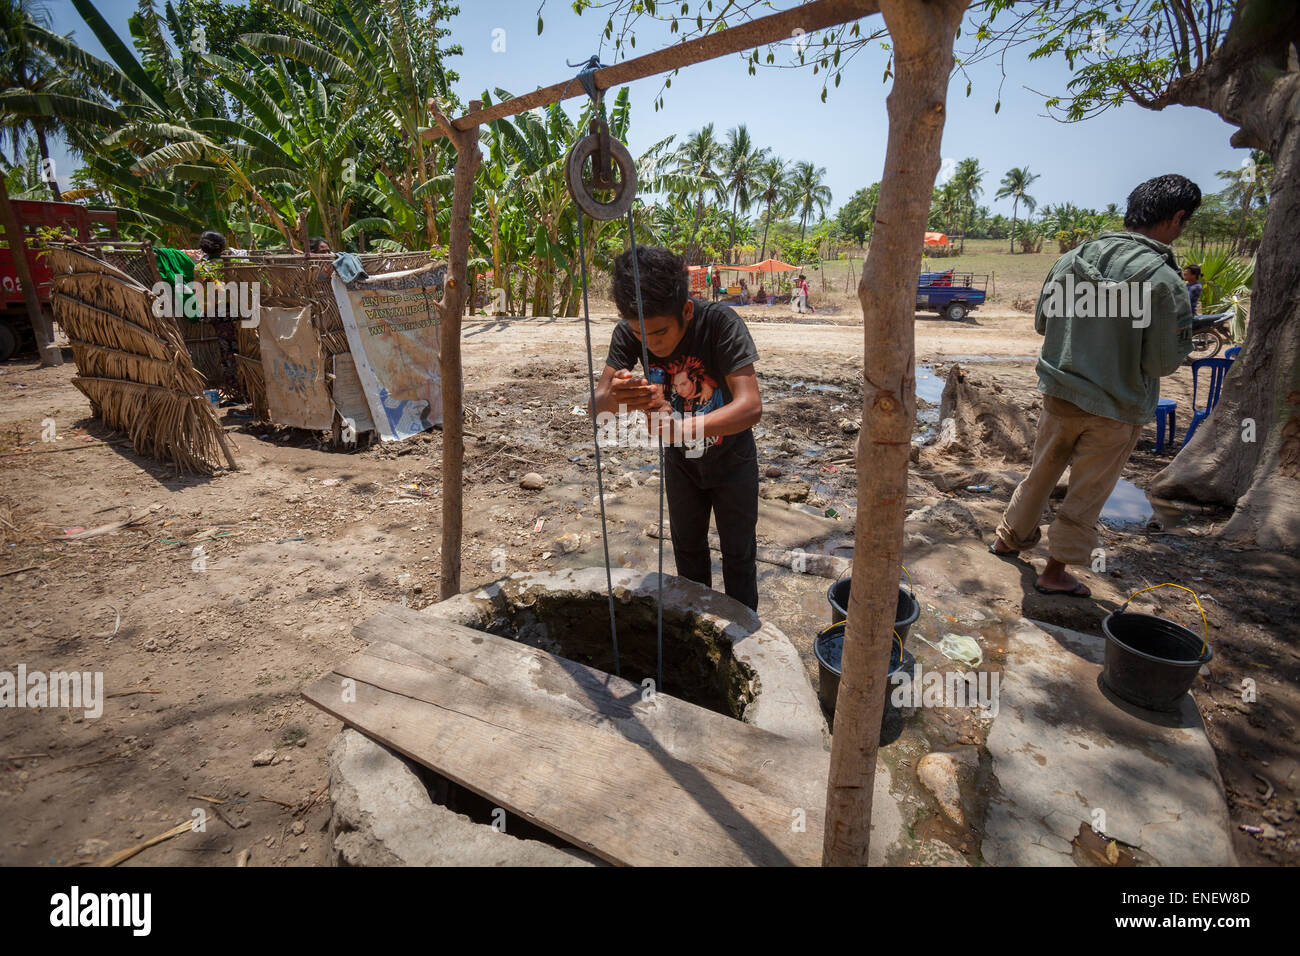 A villager lifting water from a communal water well during dry season in Sumba Island, Indonesia. - Stock Image